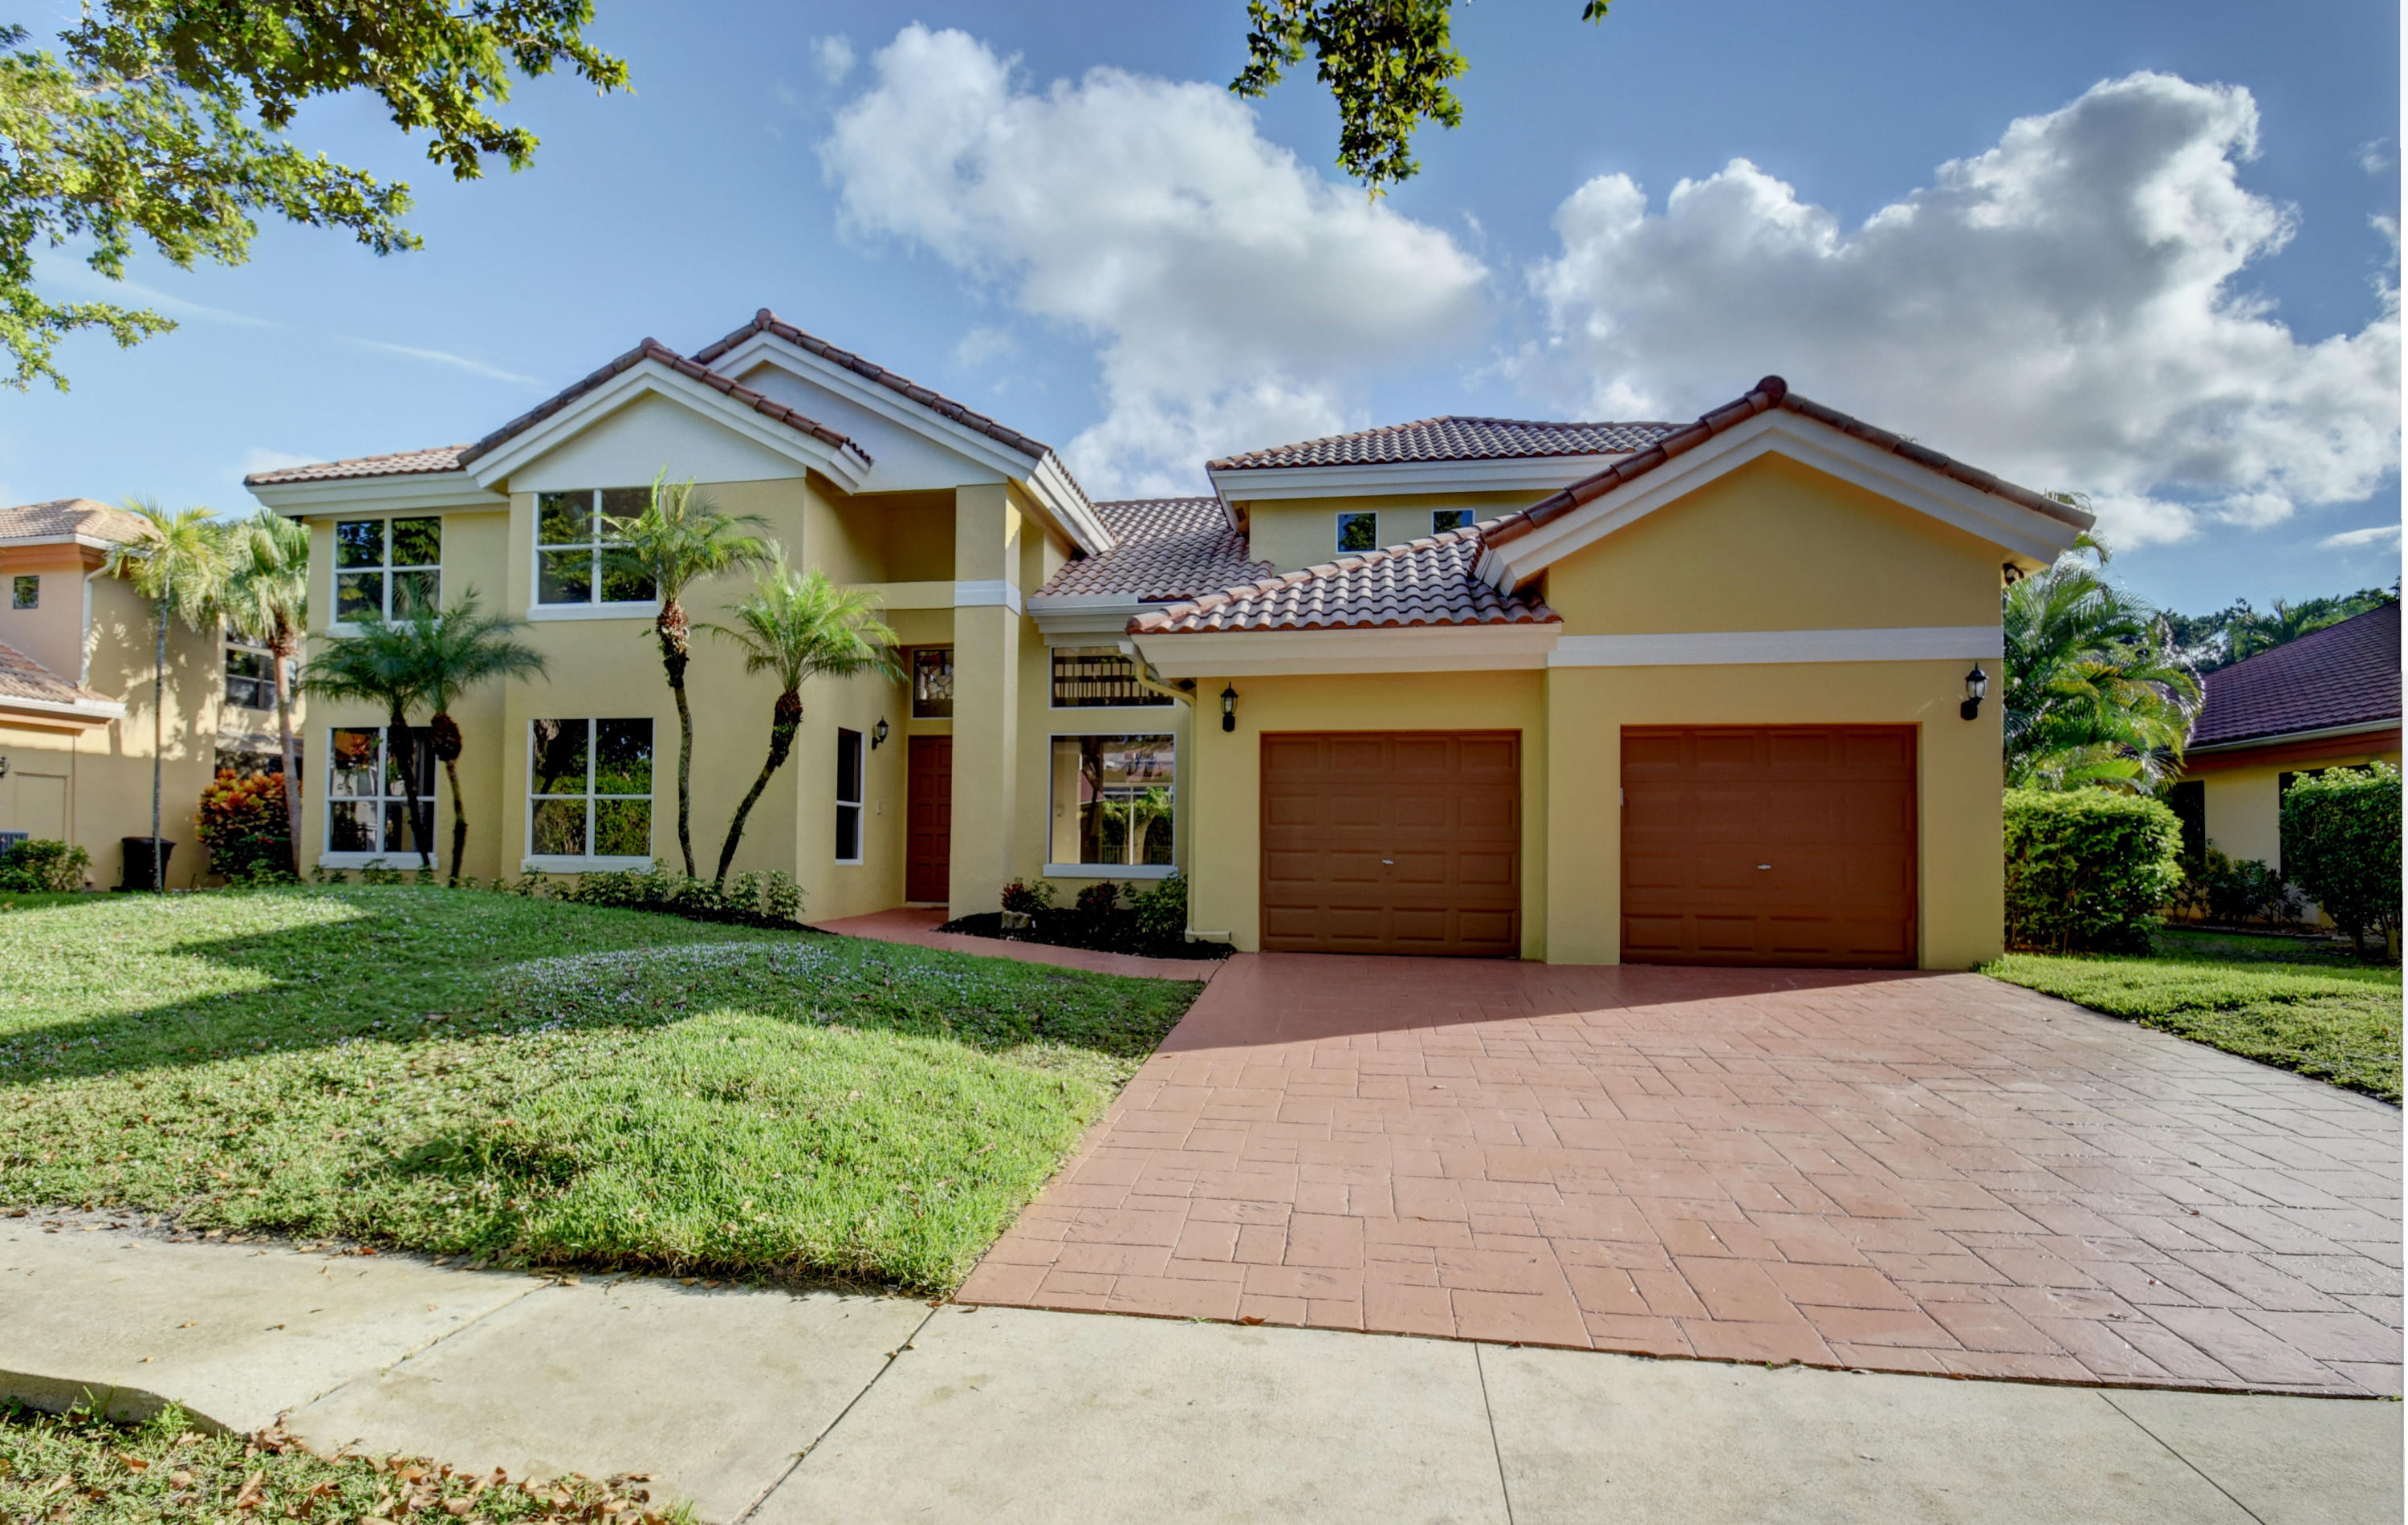 Photo of 2650 NW 46th Street, Boca Raton, FL 33434